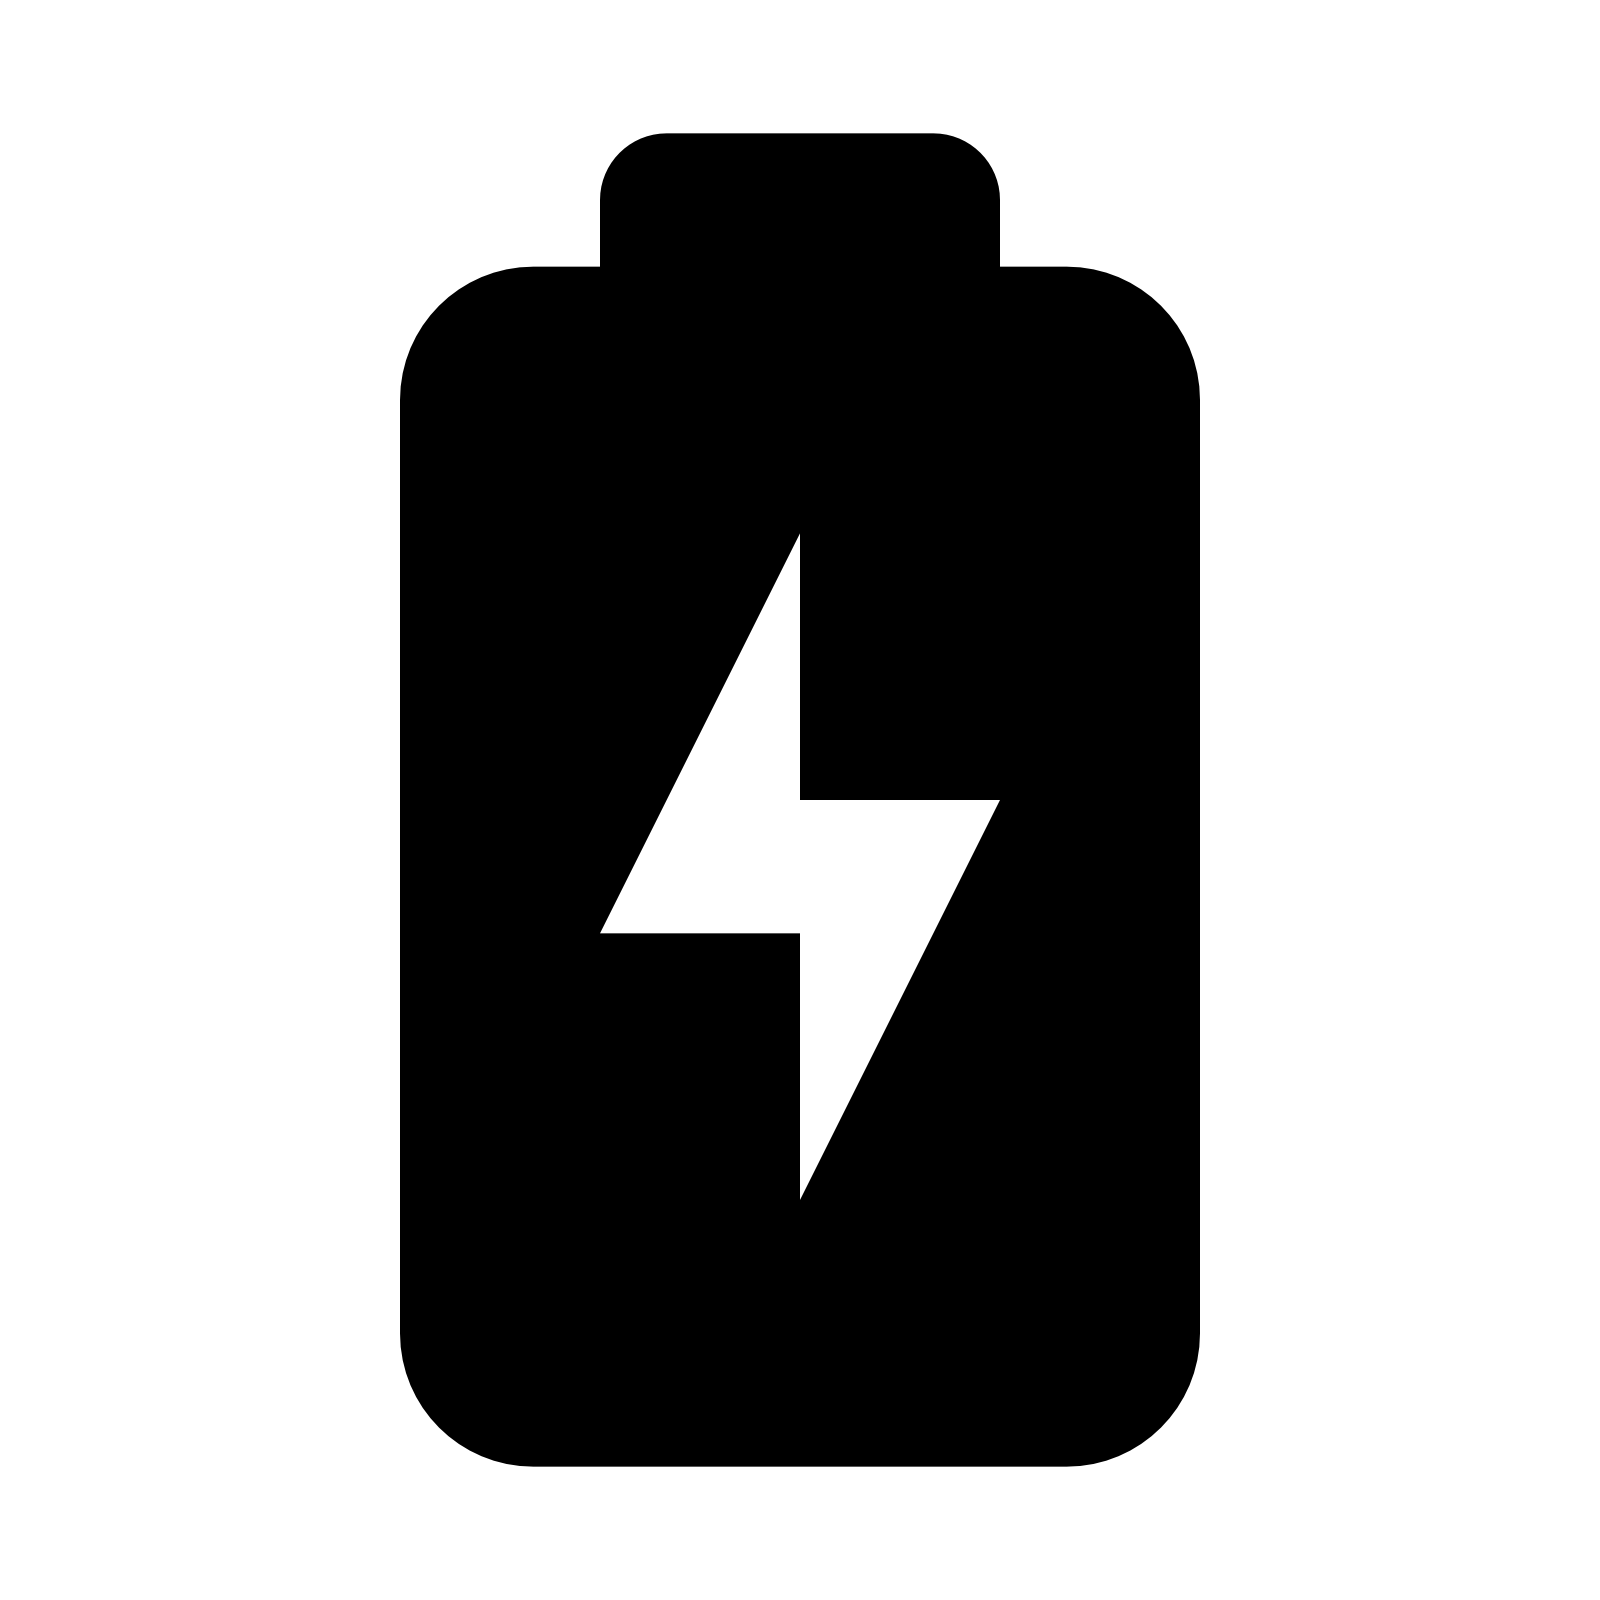 Clipart PNG Battery Charging Photos 7775